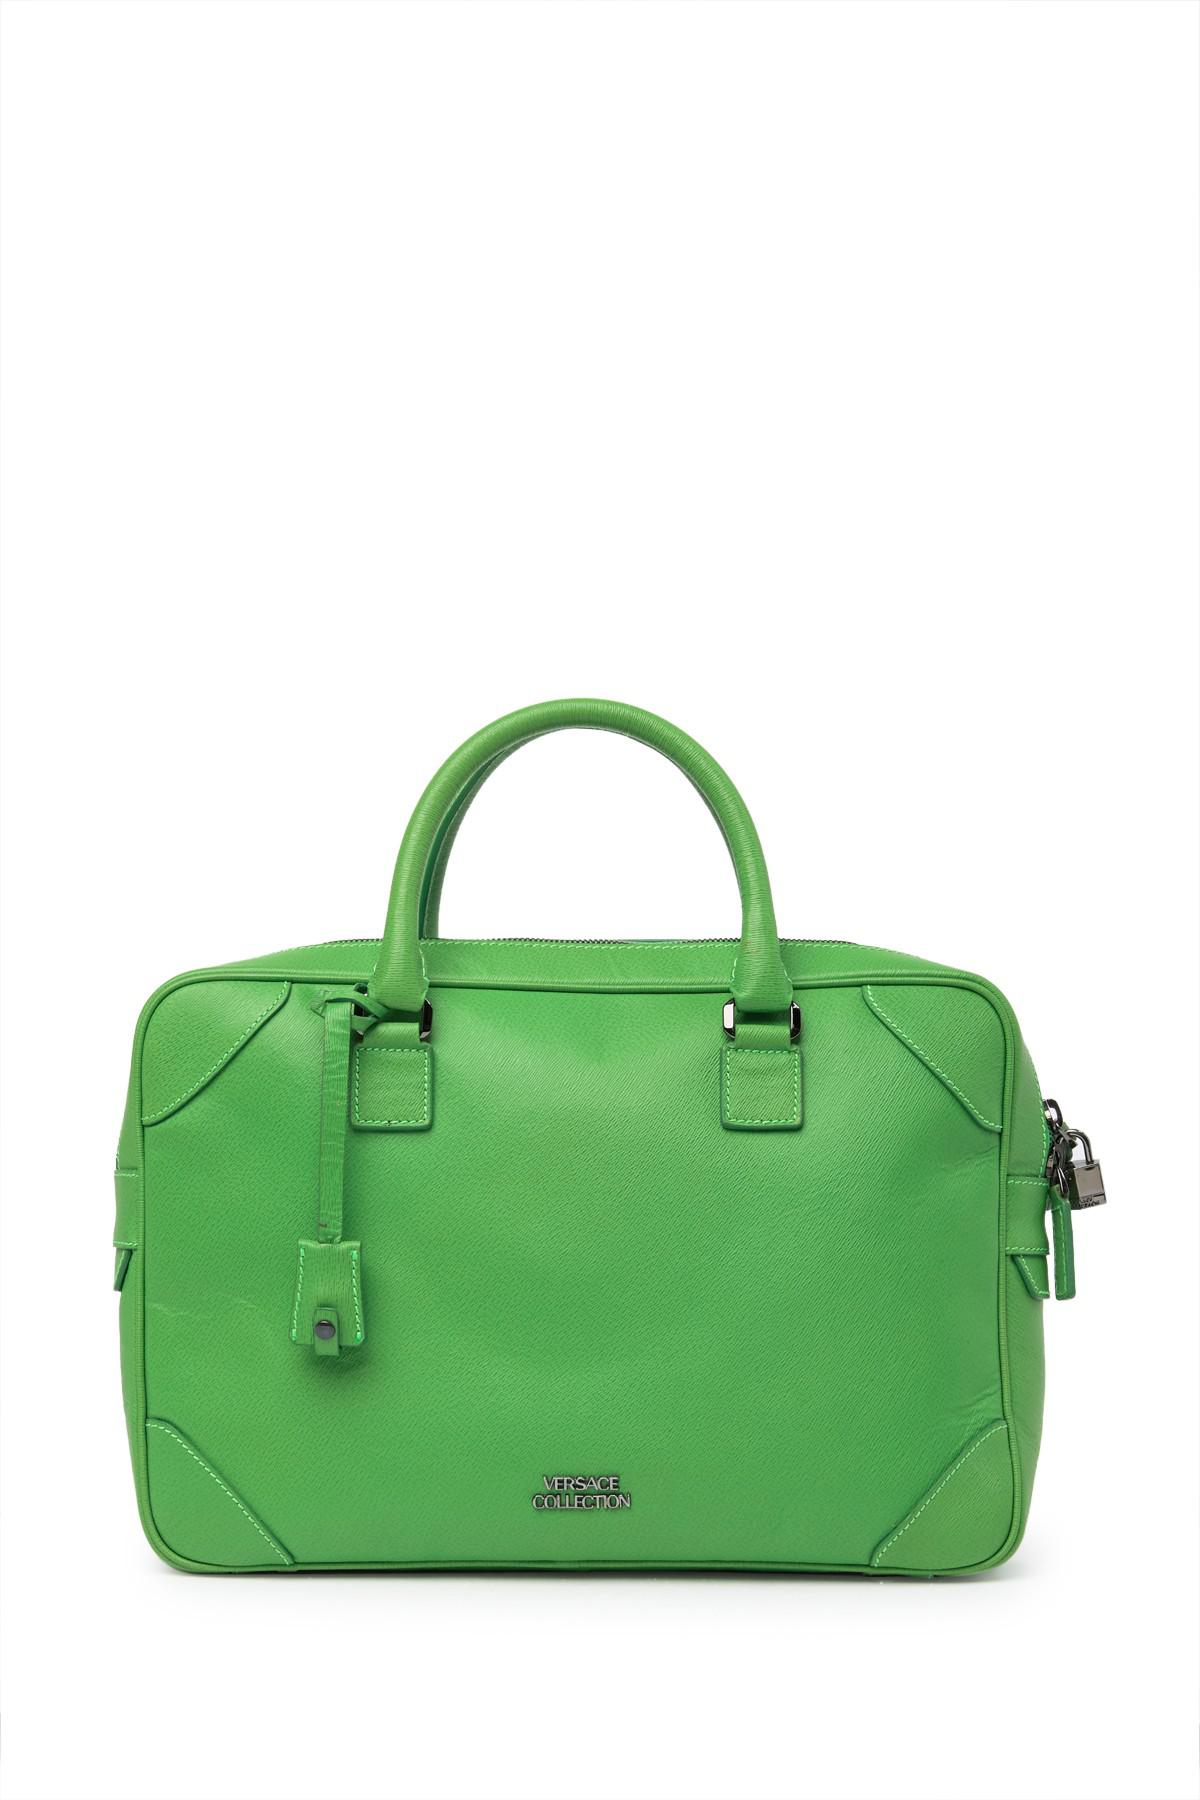 Lyst - Versace Leather Travel Bag in Green for Men 70126f37d429f